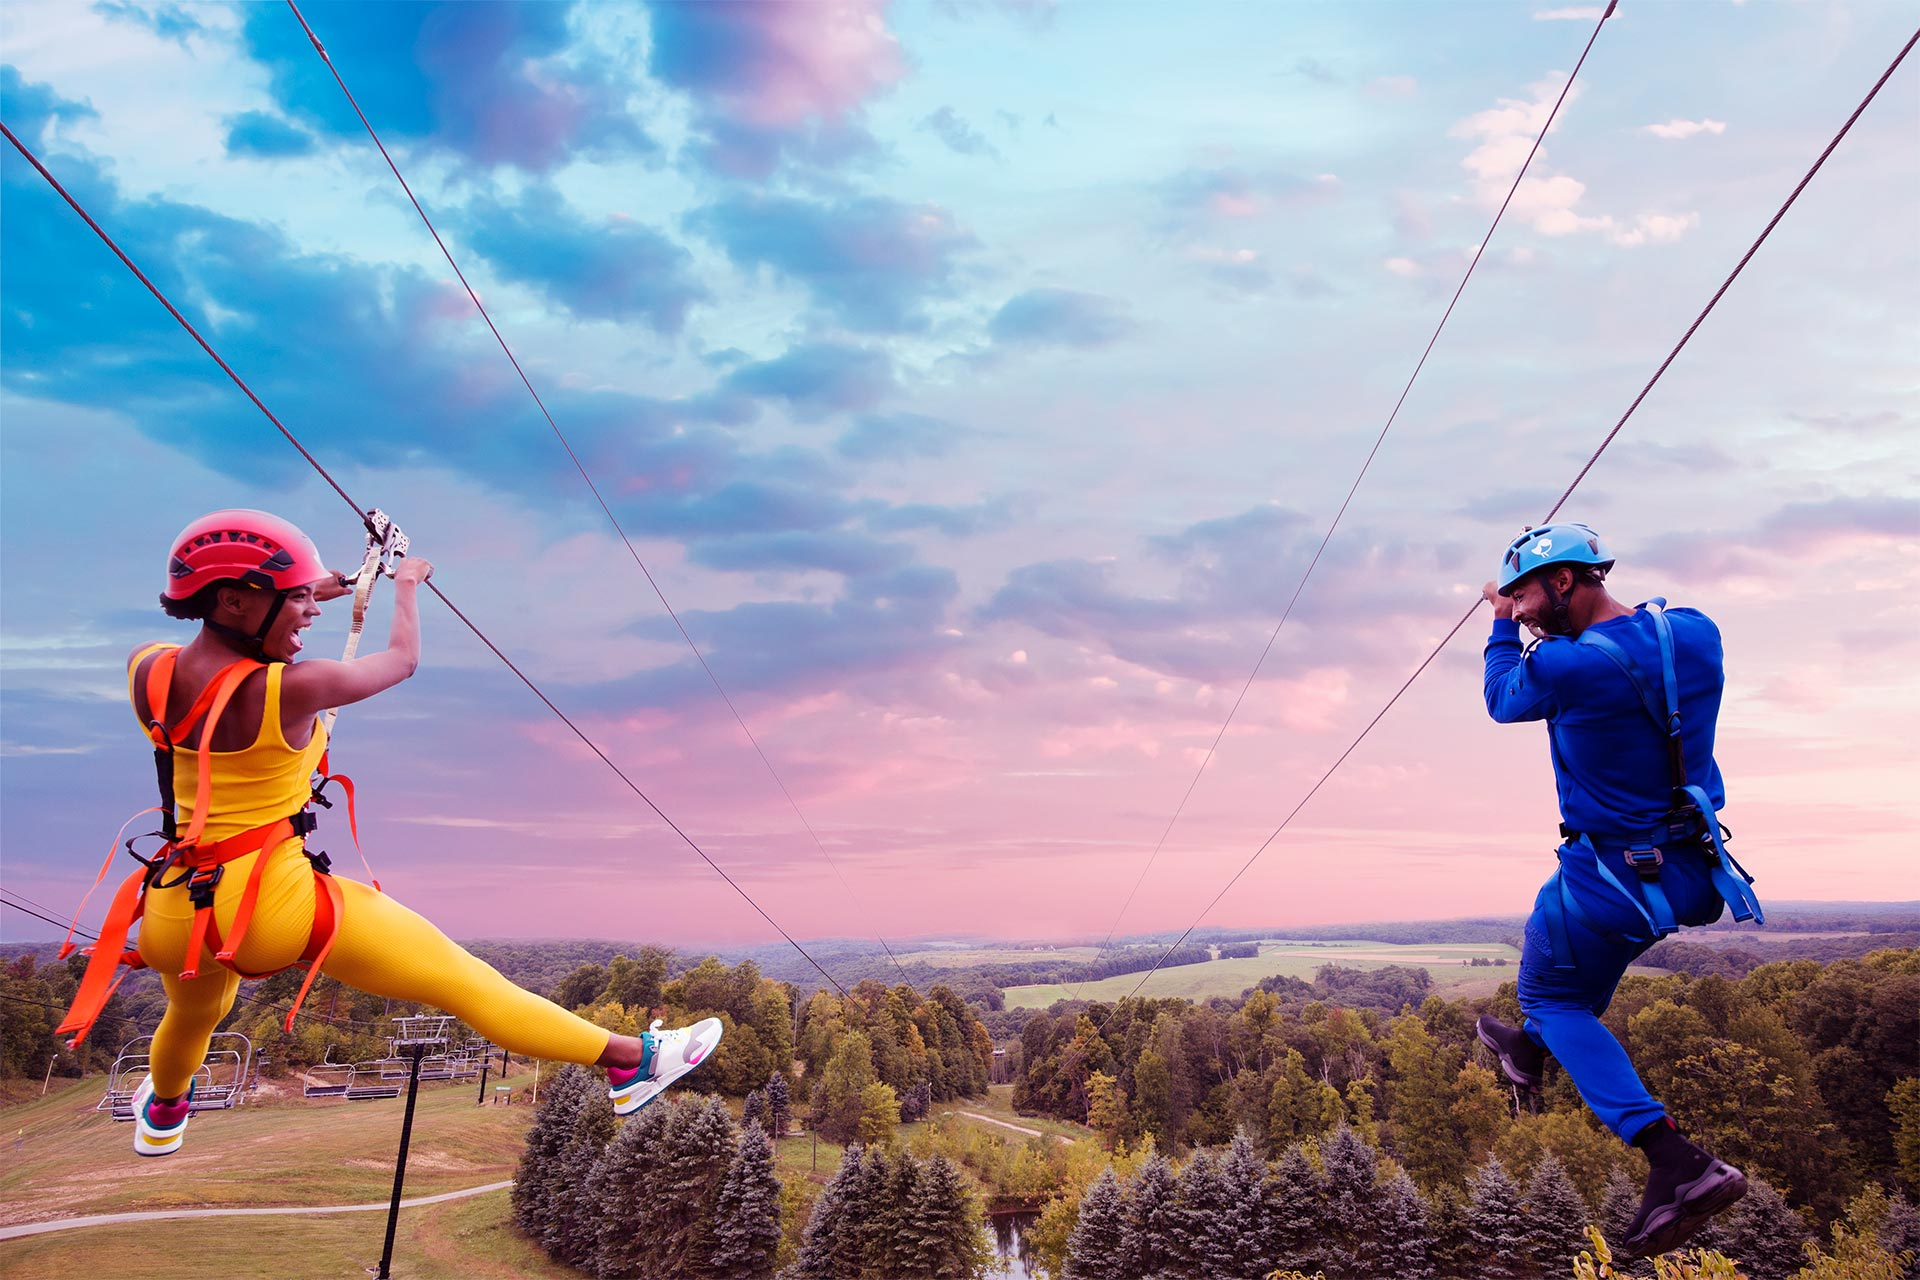 A man and a woman ziplining parallel to one another